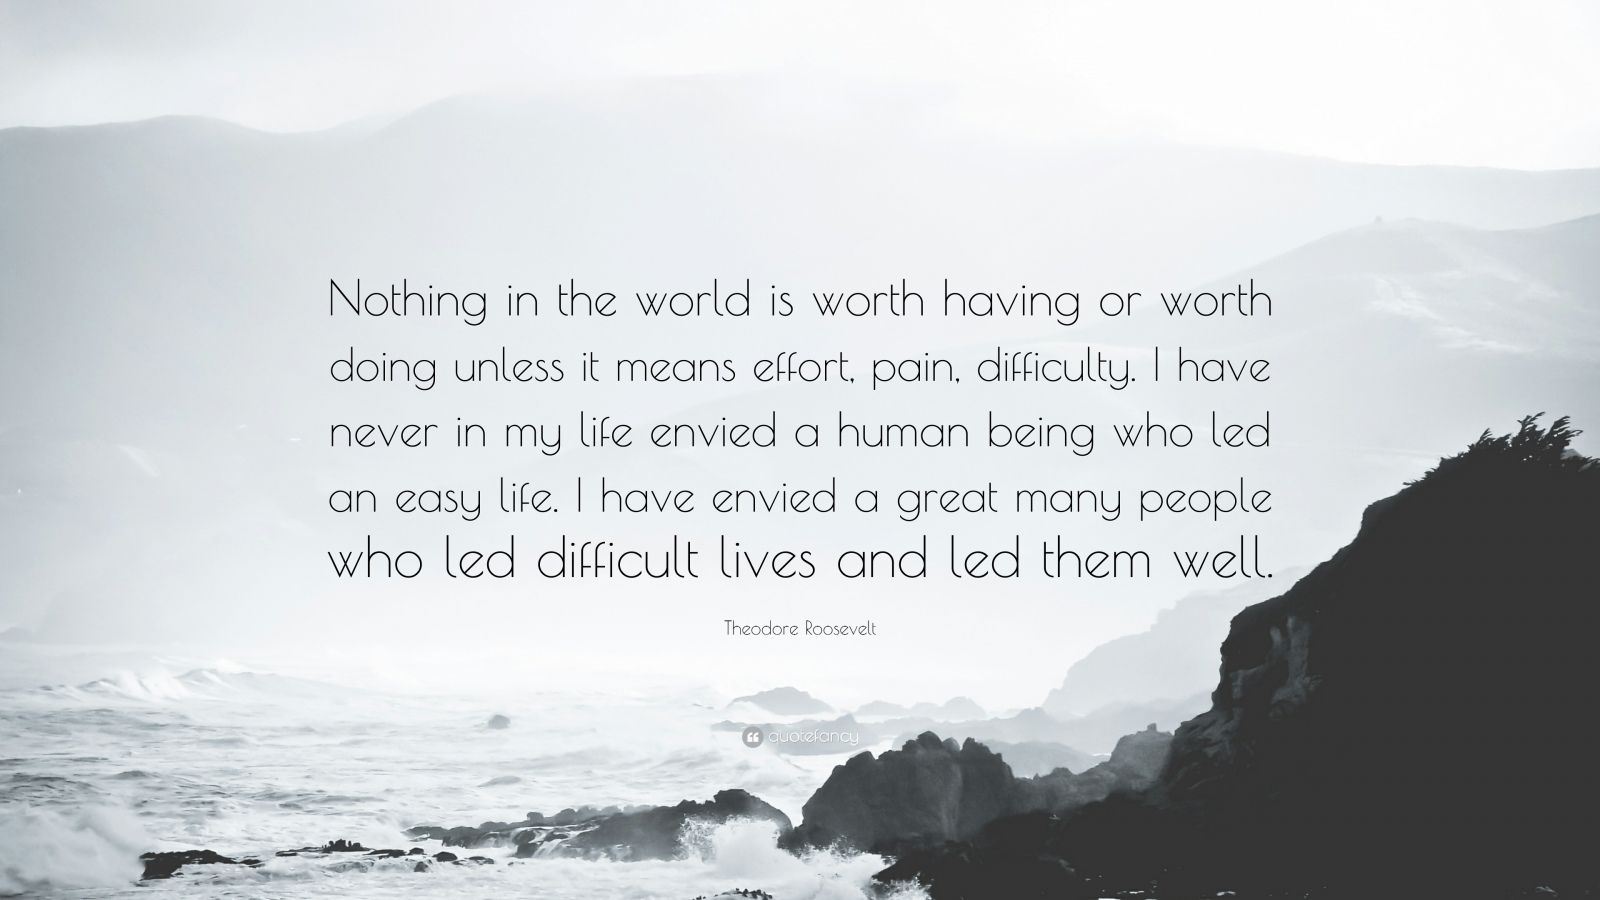 "Theodore Roosevelt Quote: ""Nothing in the world is worth having or worth doing unless it means effort, pain, difficulty. I have never in my life envied a human being who led an easy life. I have envied a great many people who led difficult lives and led them well."""